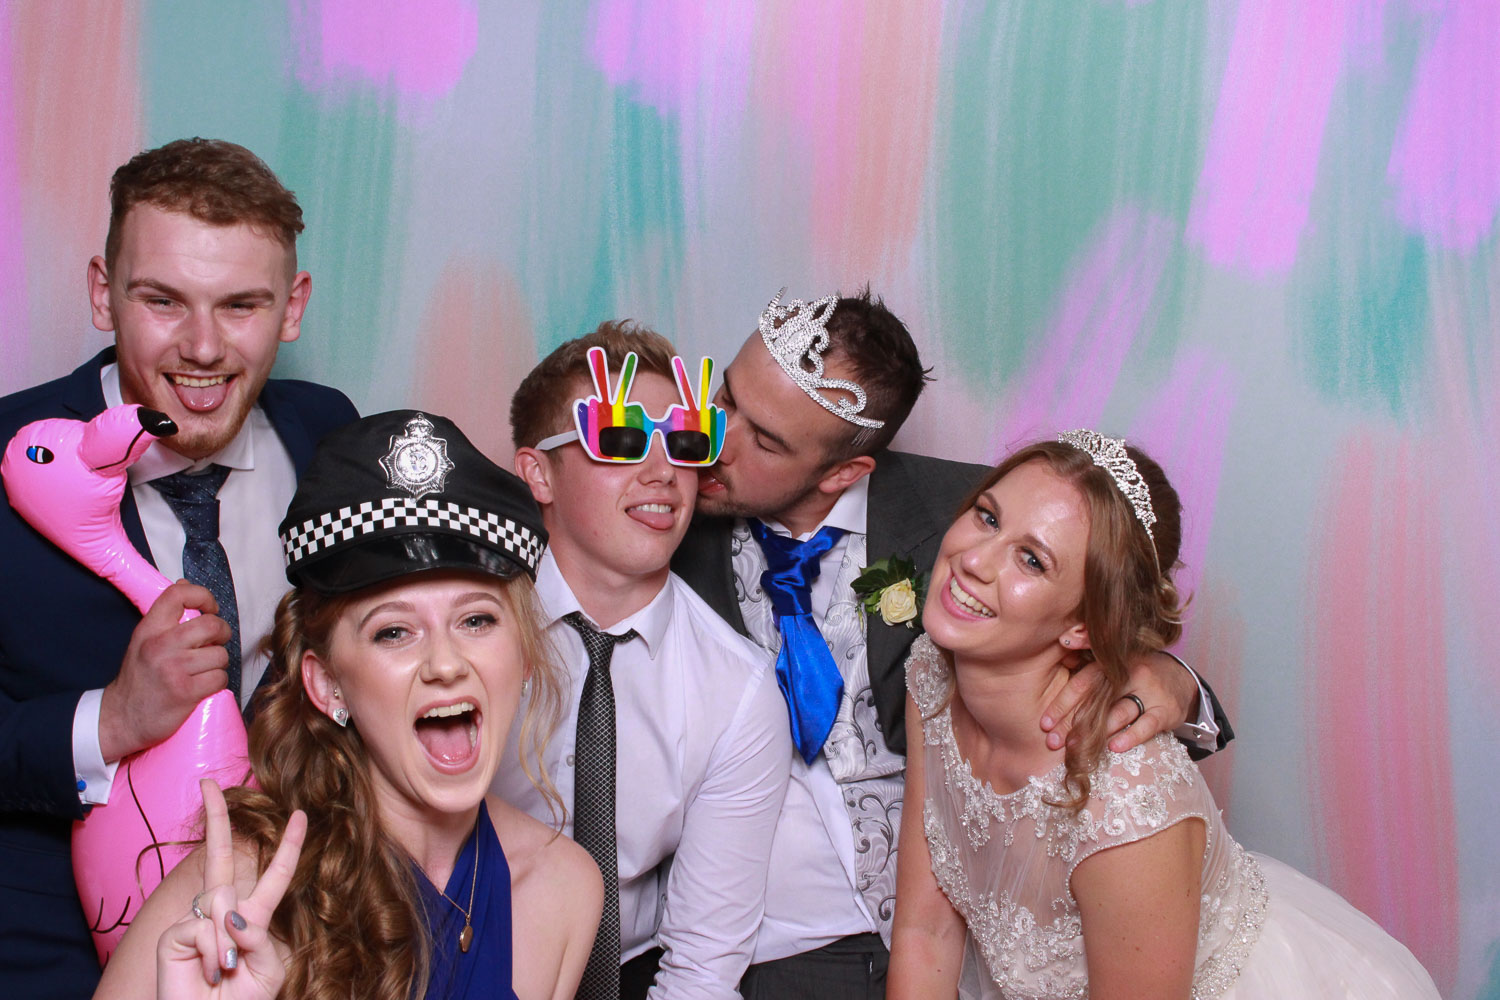 Aldwark Manor Photo Booth